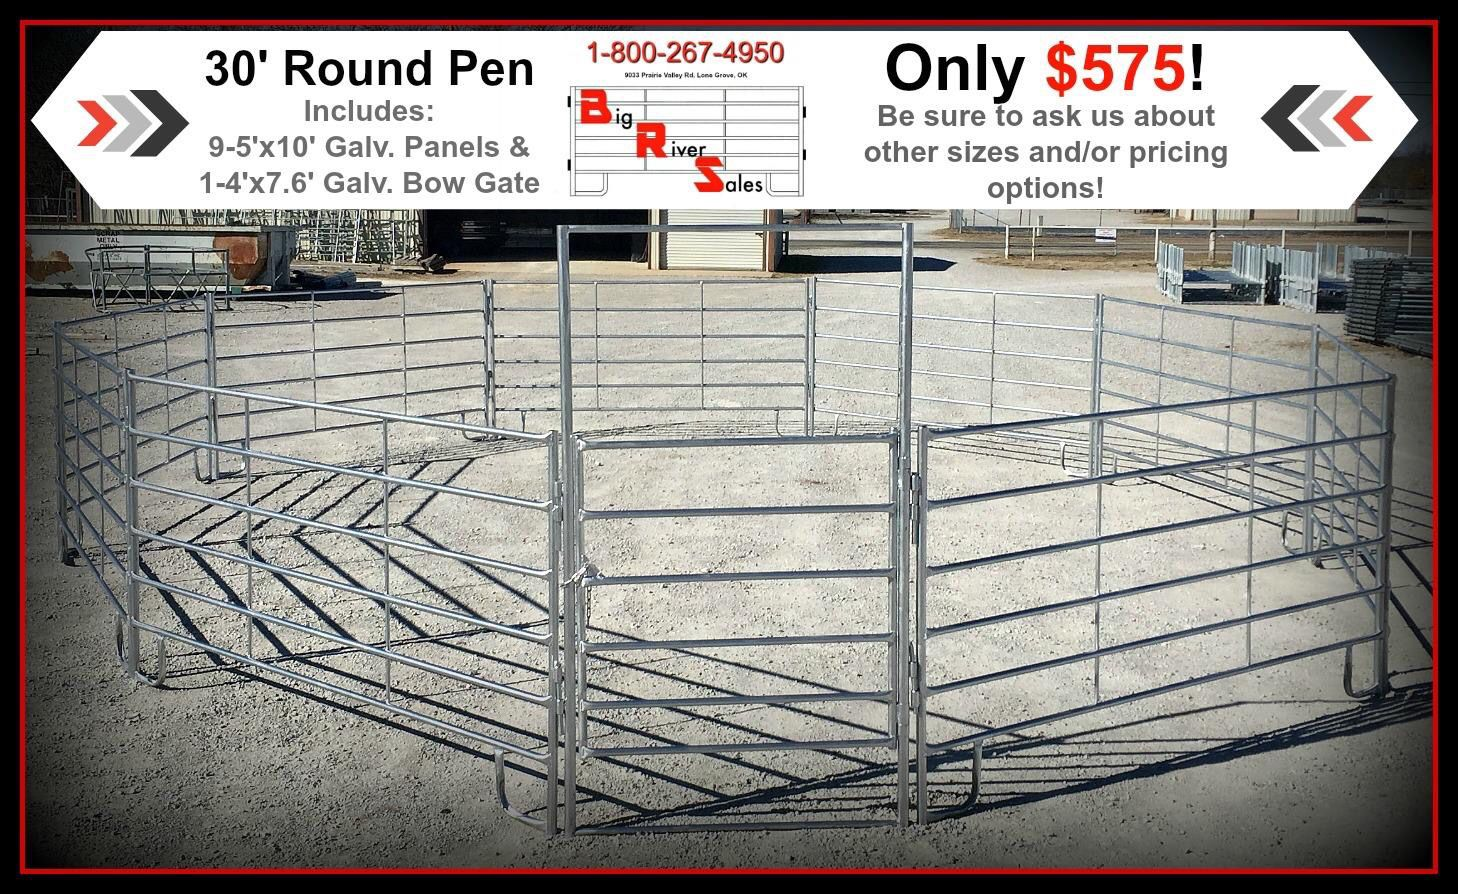 30' Galvanized Round Pen & Bow Gate, Only $575!   Bc We Are The Manufacturer, We Can Do It For Less, Come and Compare!  Facebook.com/BigRiverSales